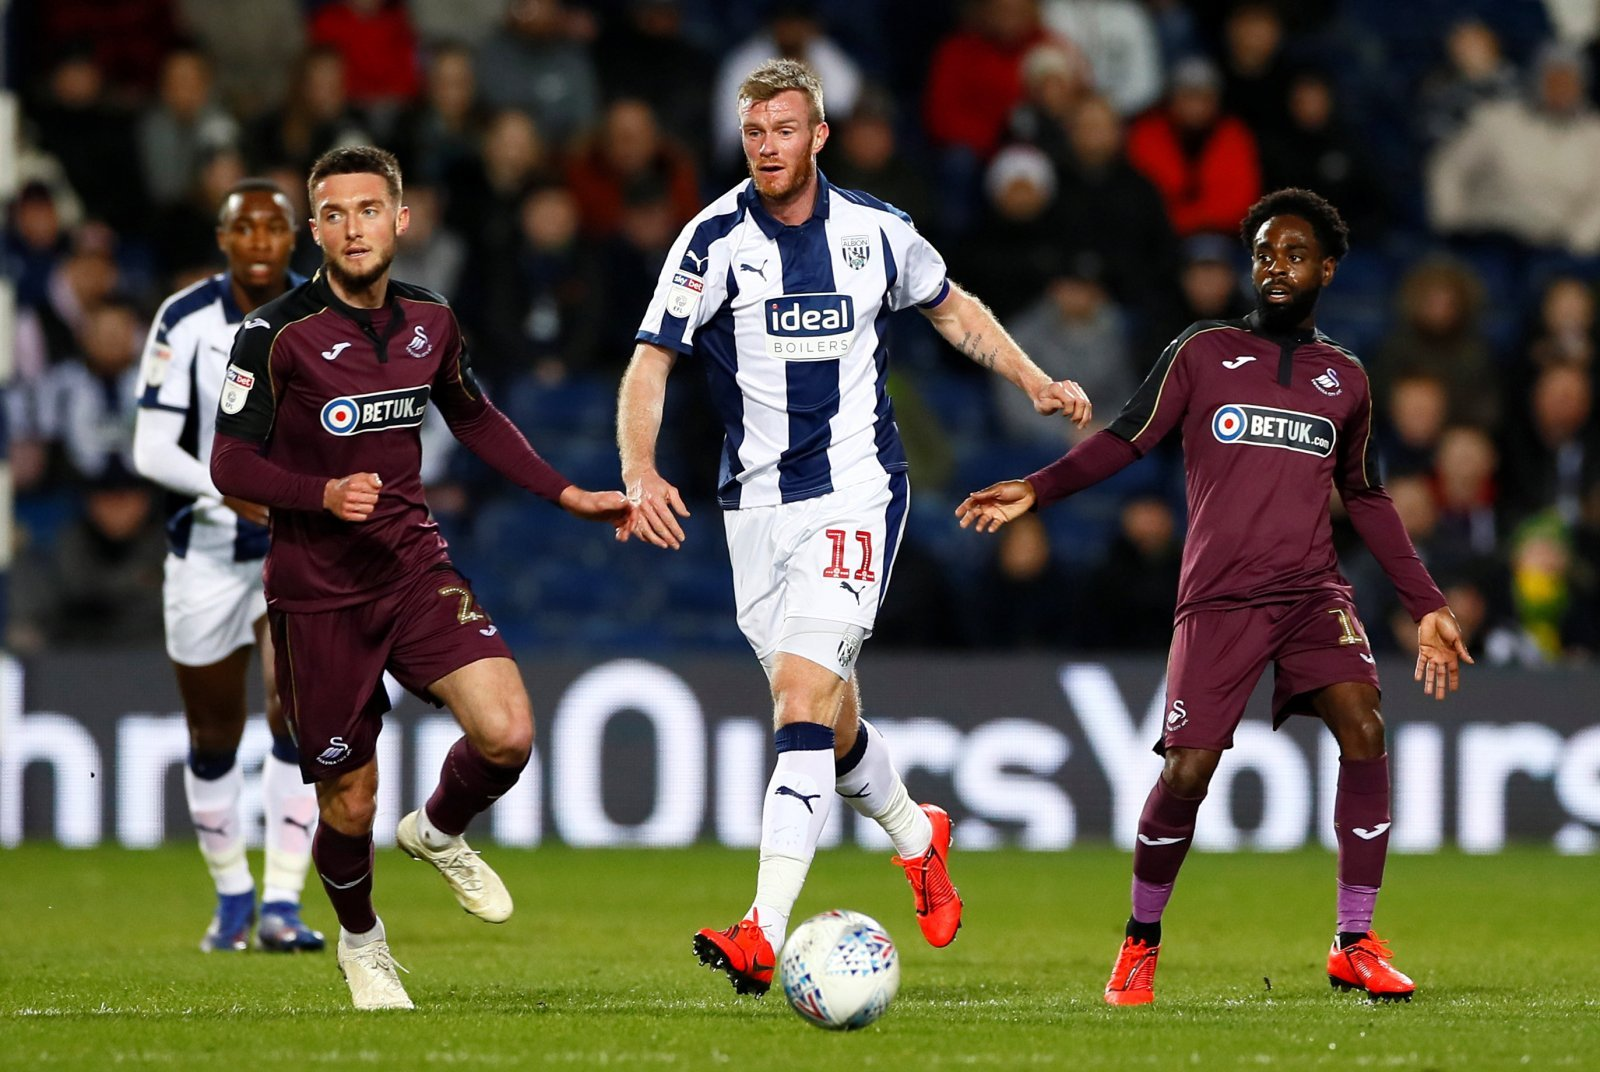 West Brom: Chris Brunt is working wonders for Jimmy Shan